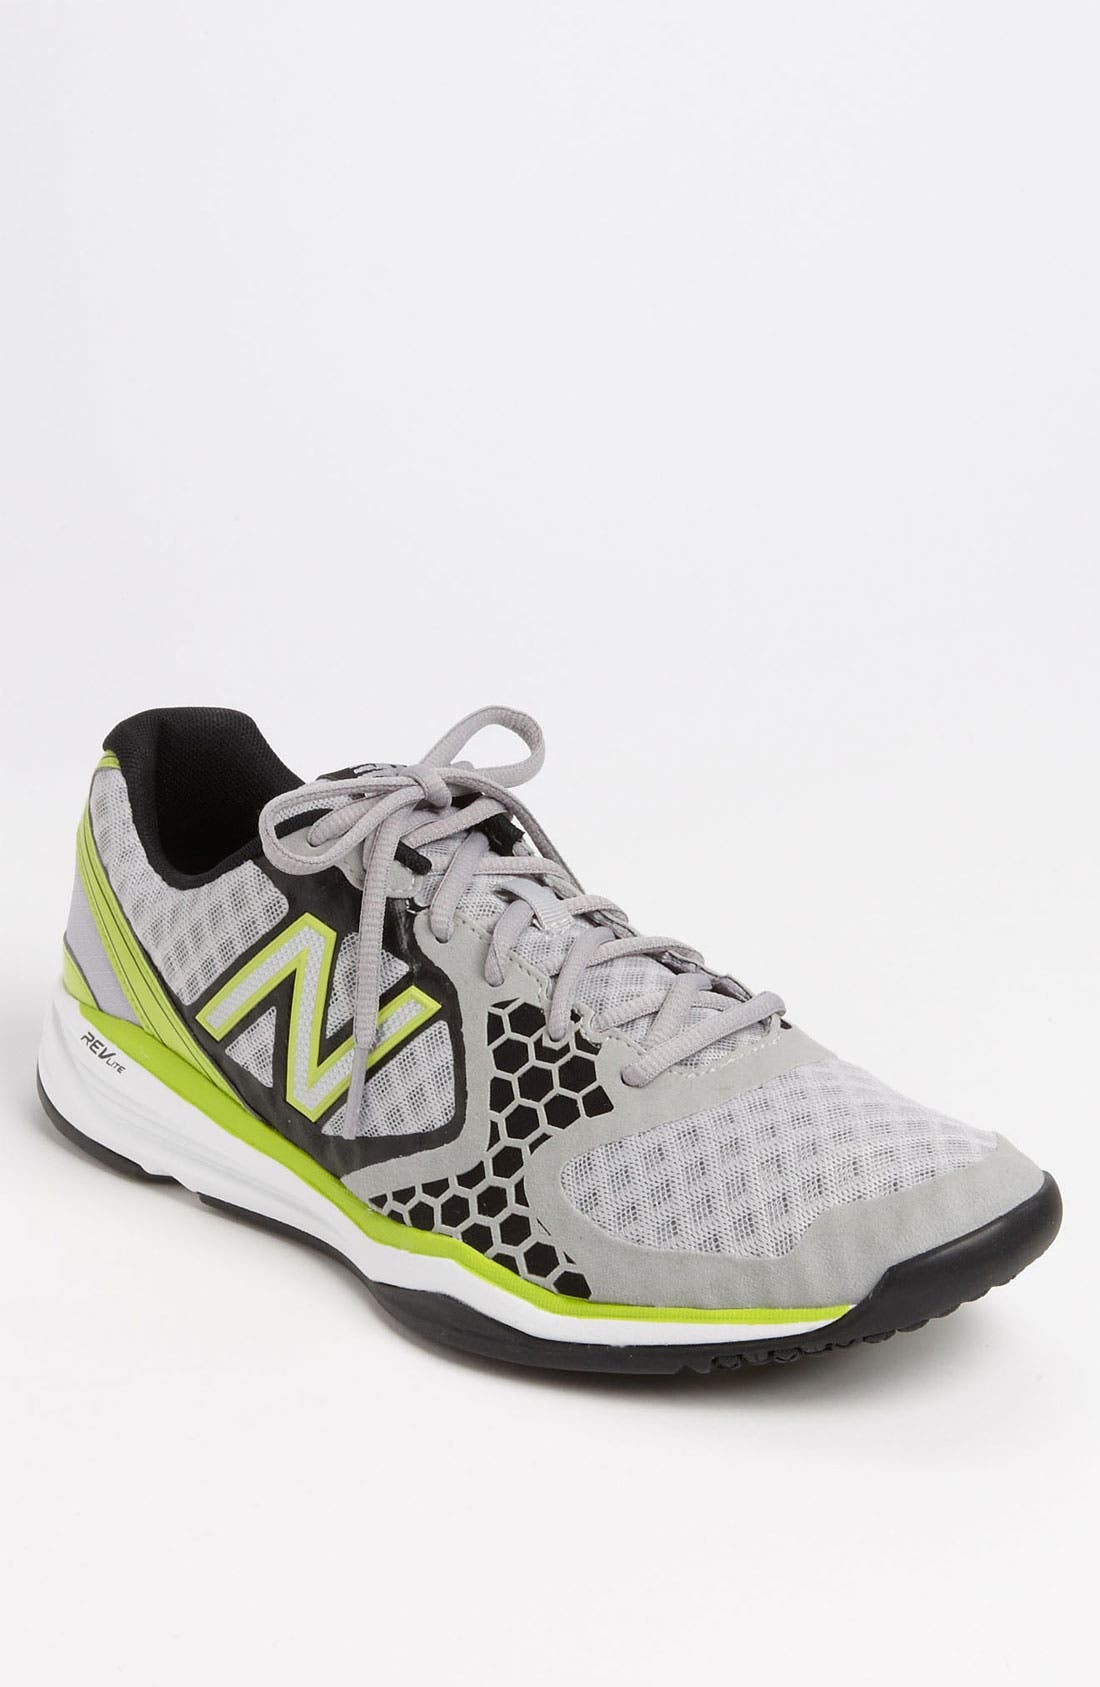 Main Image - New Balance 'REVlite' Training Shoe (Men)